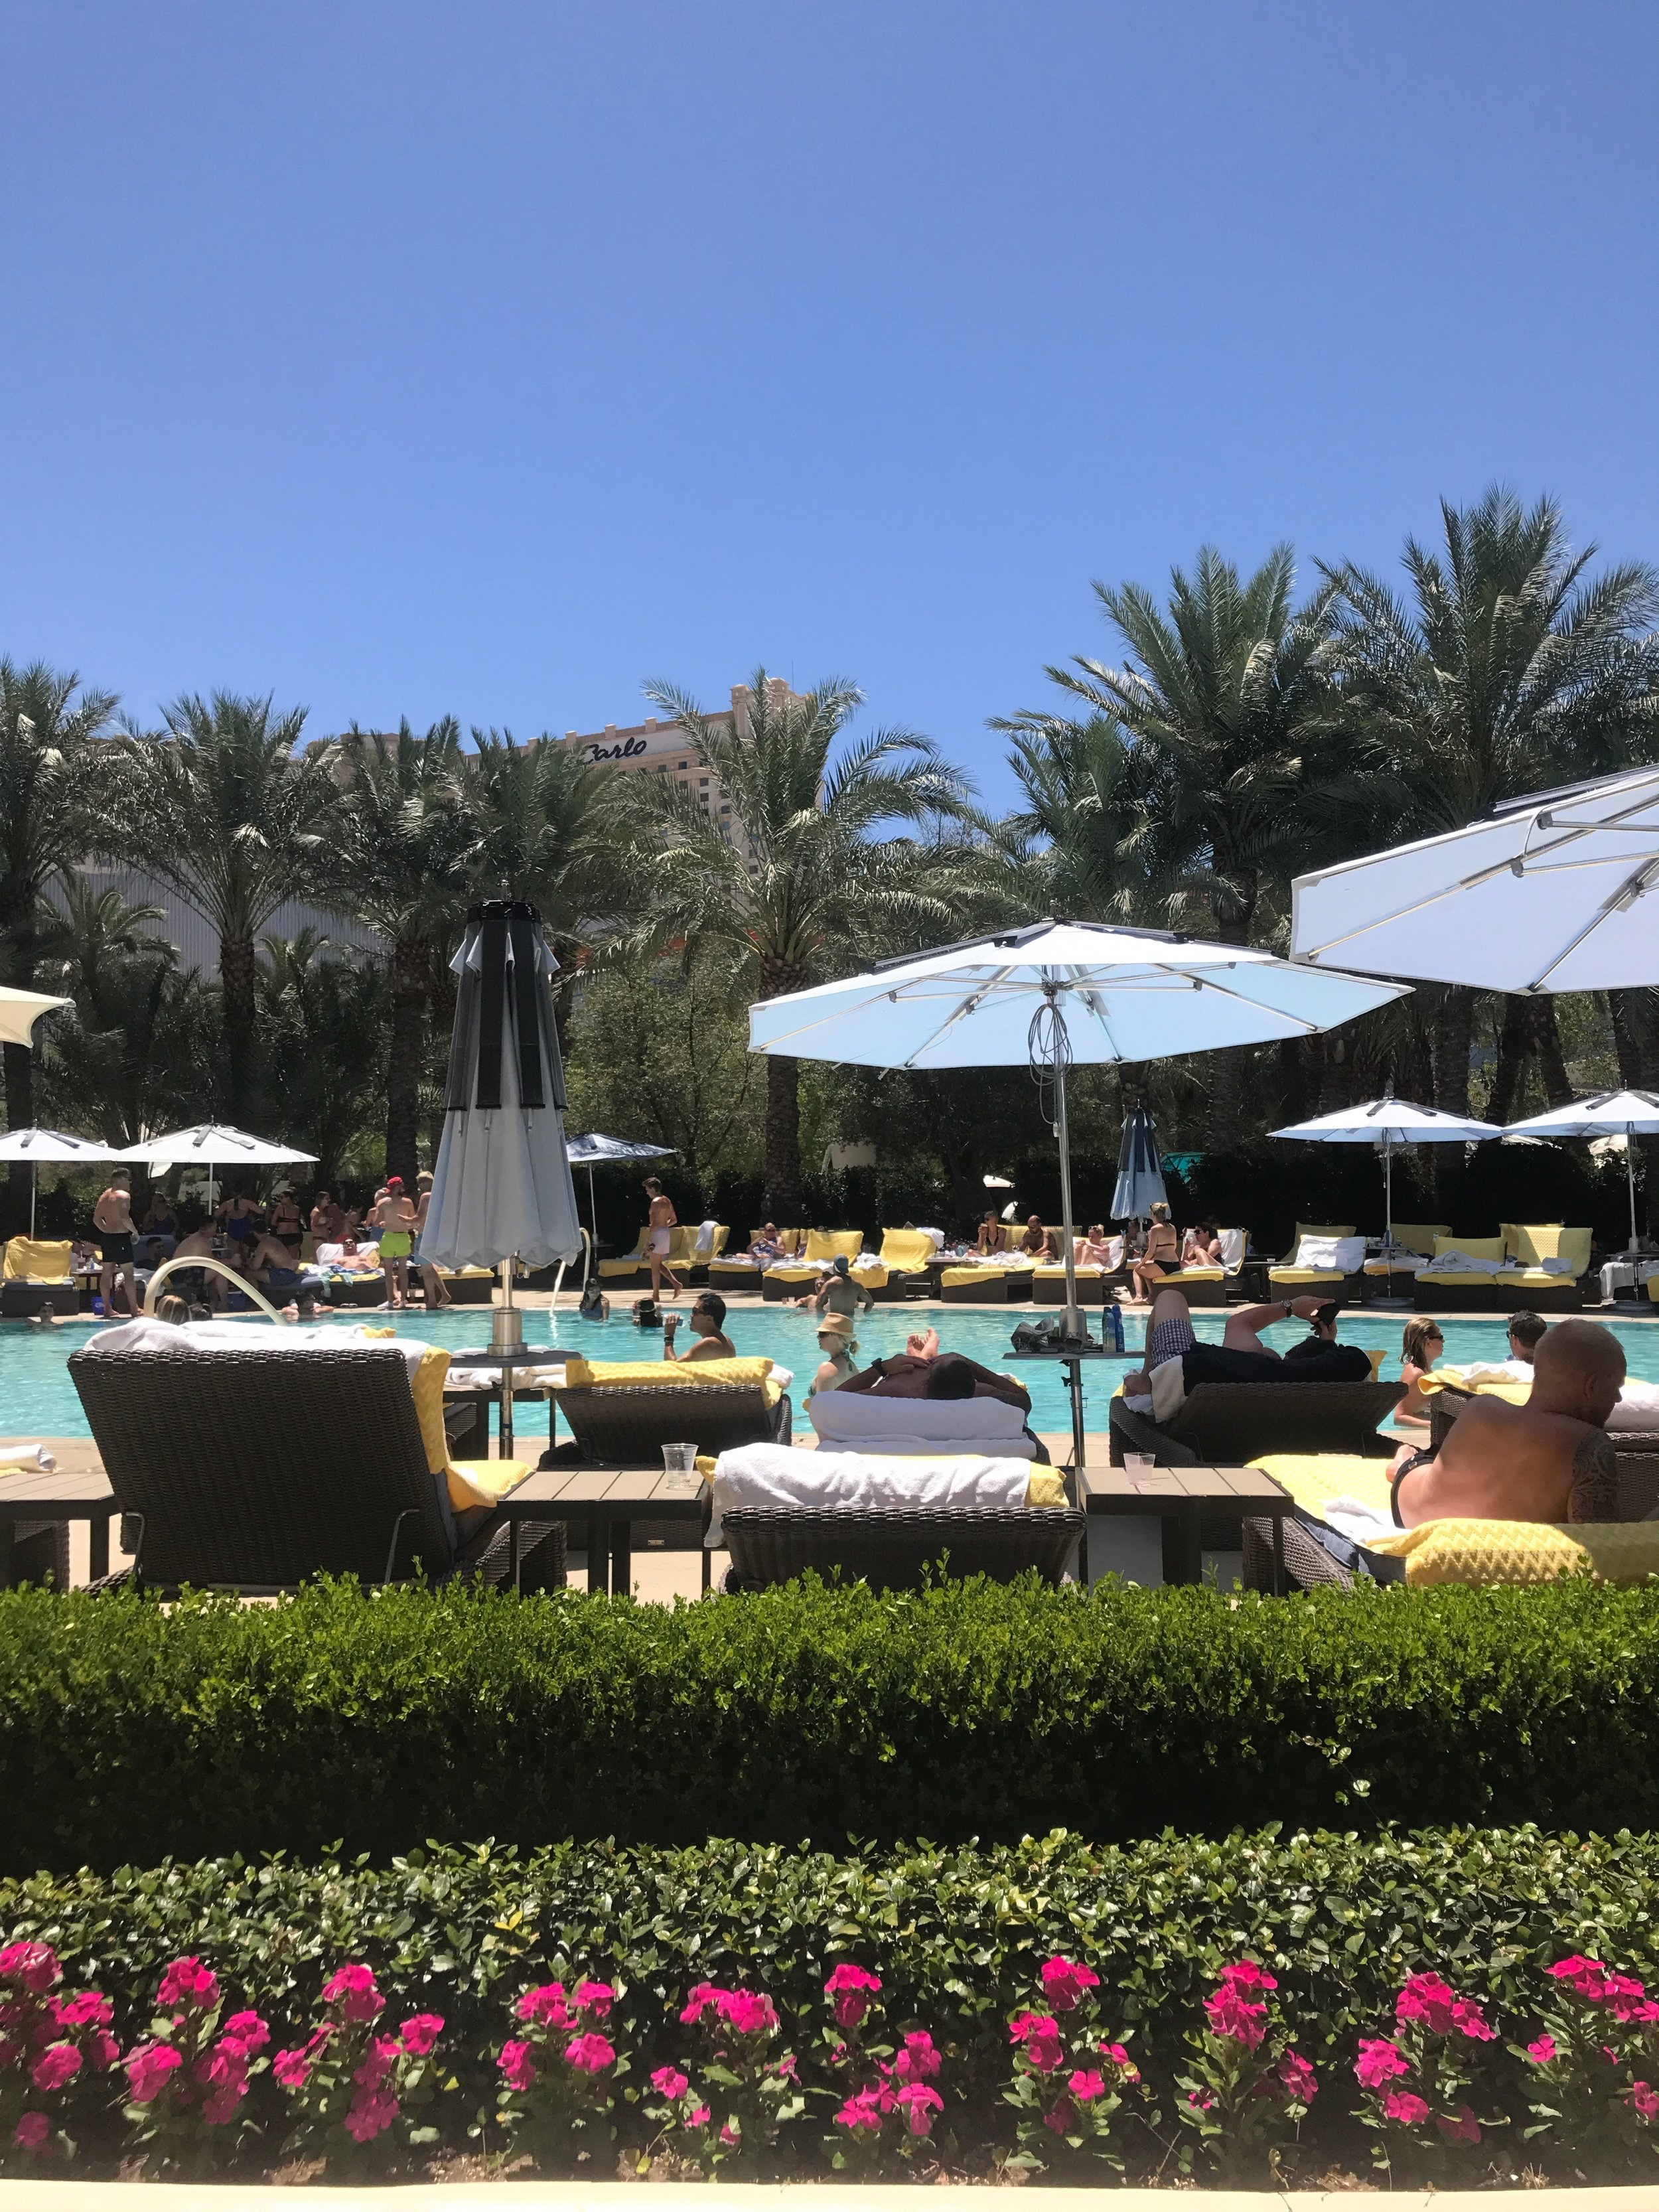 Poolside at the aria